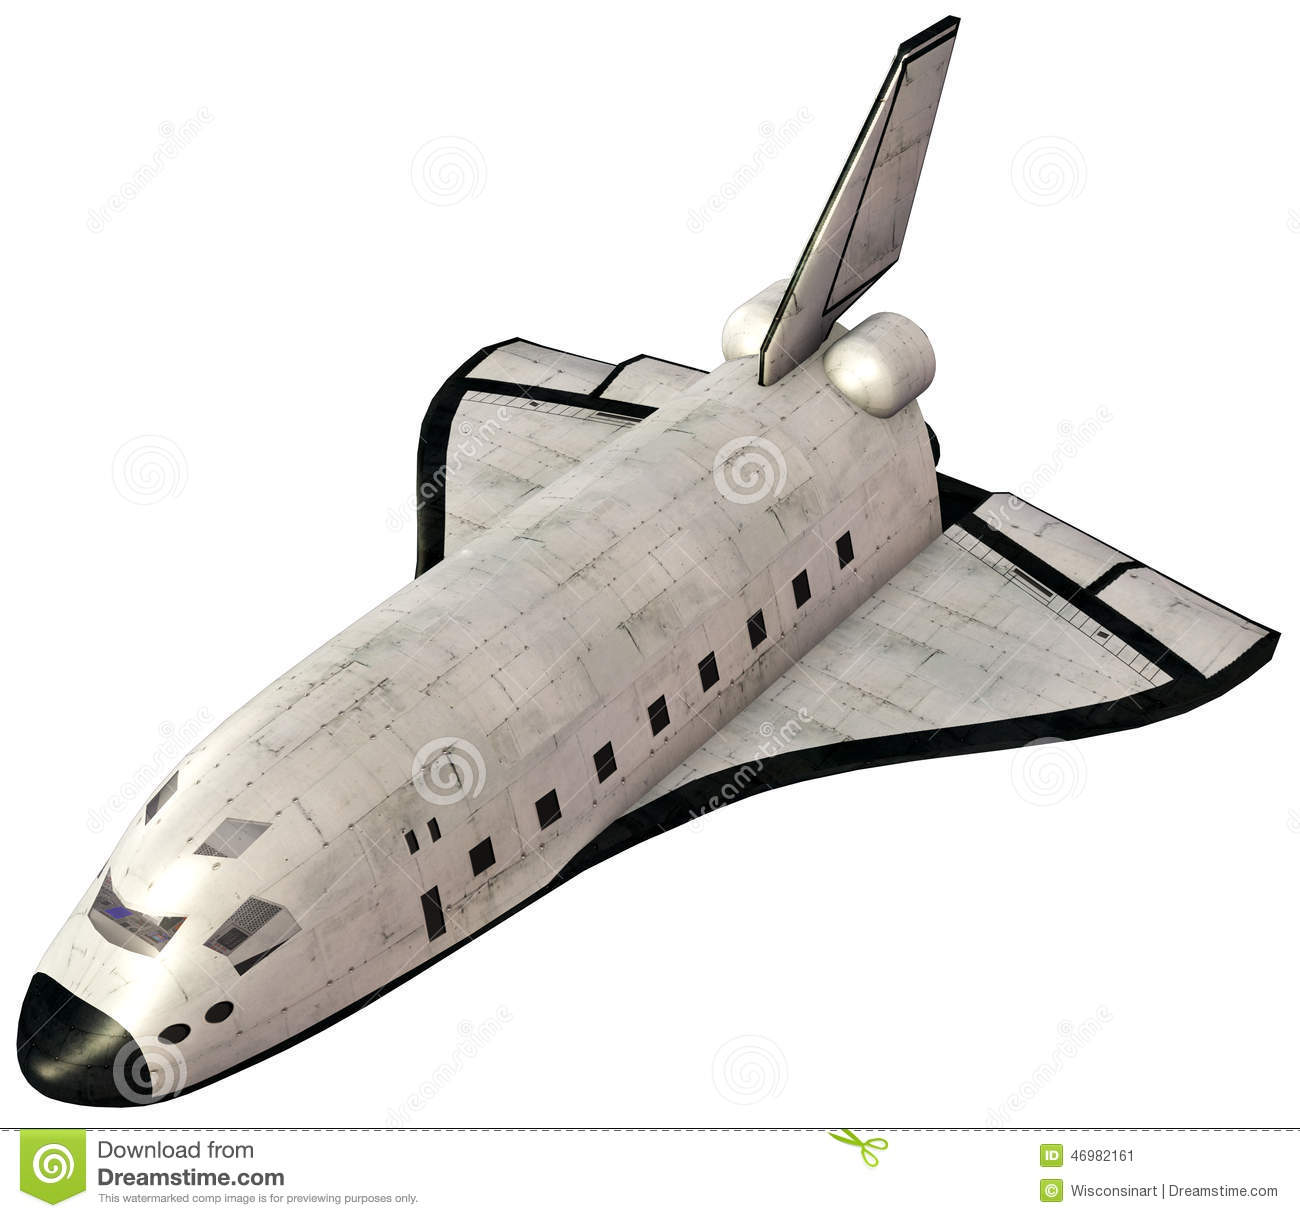 new space shuttle illustration - photo #34